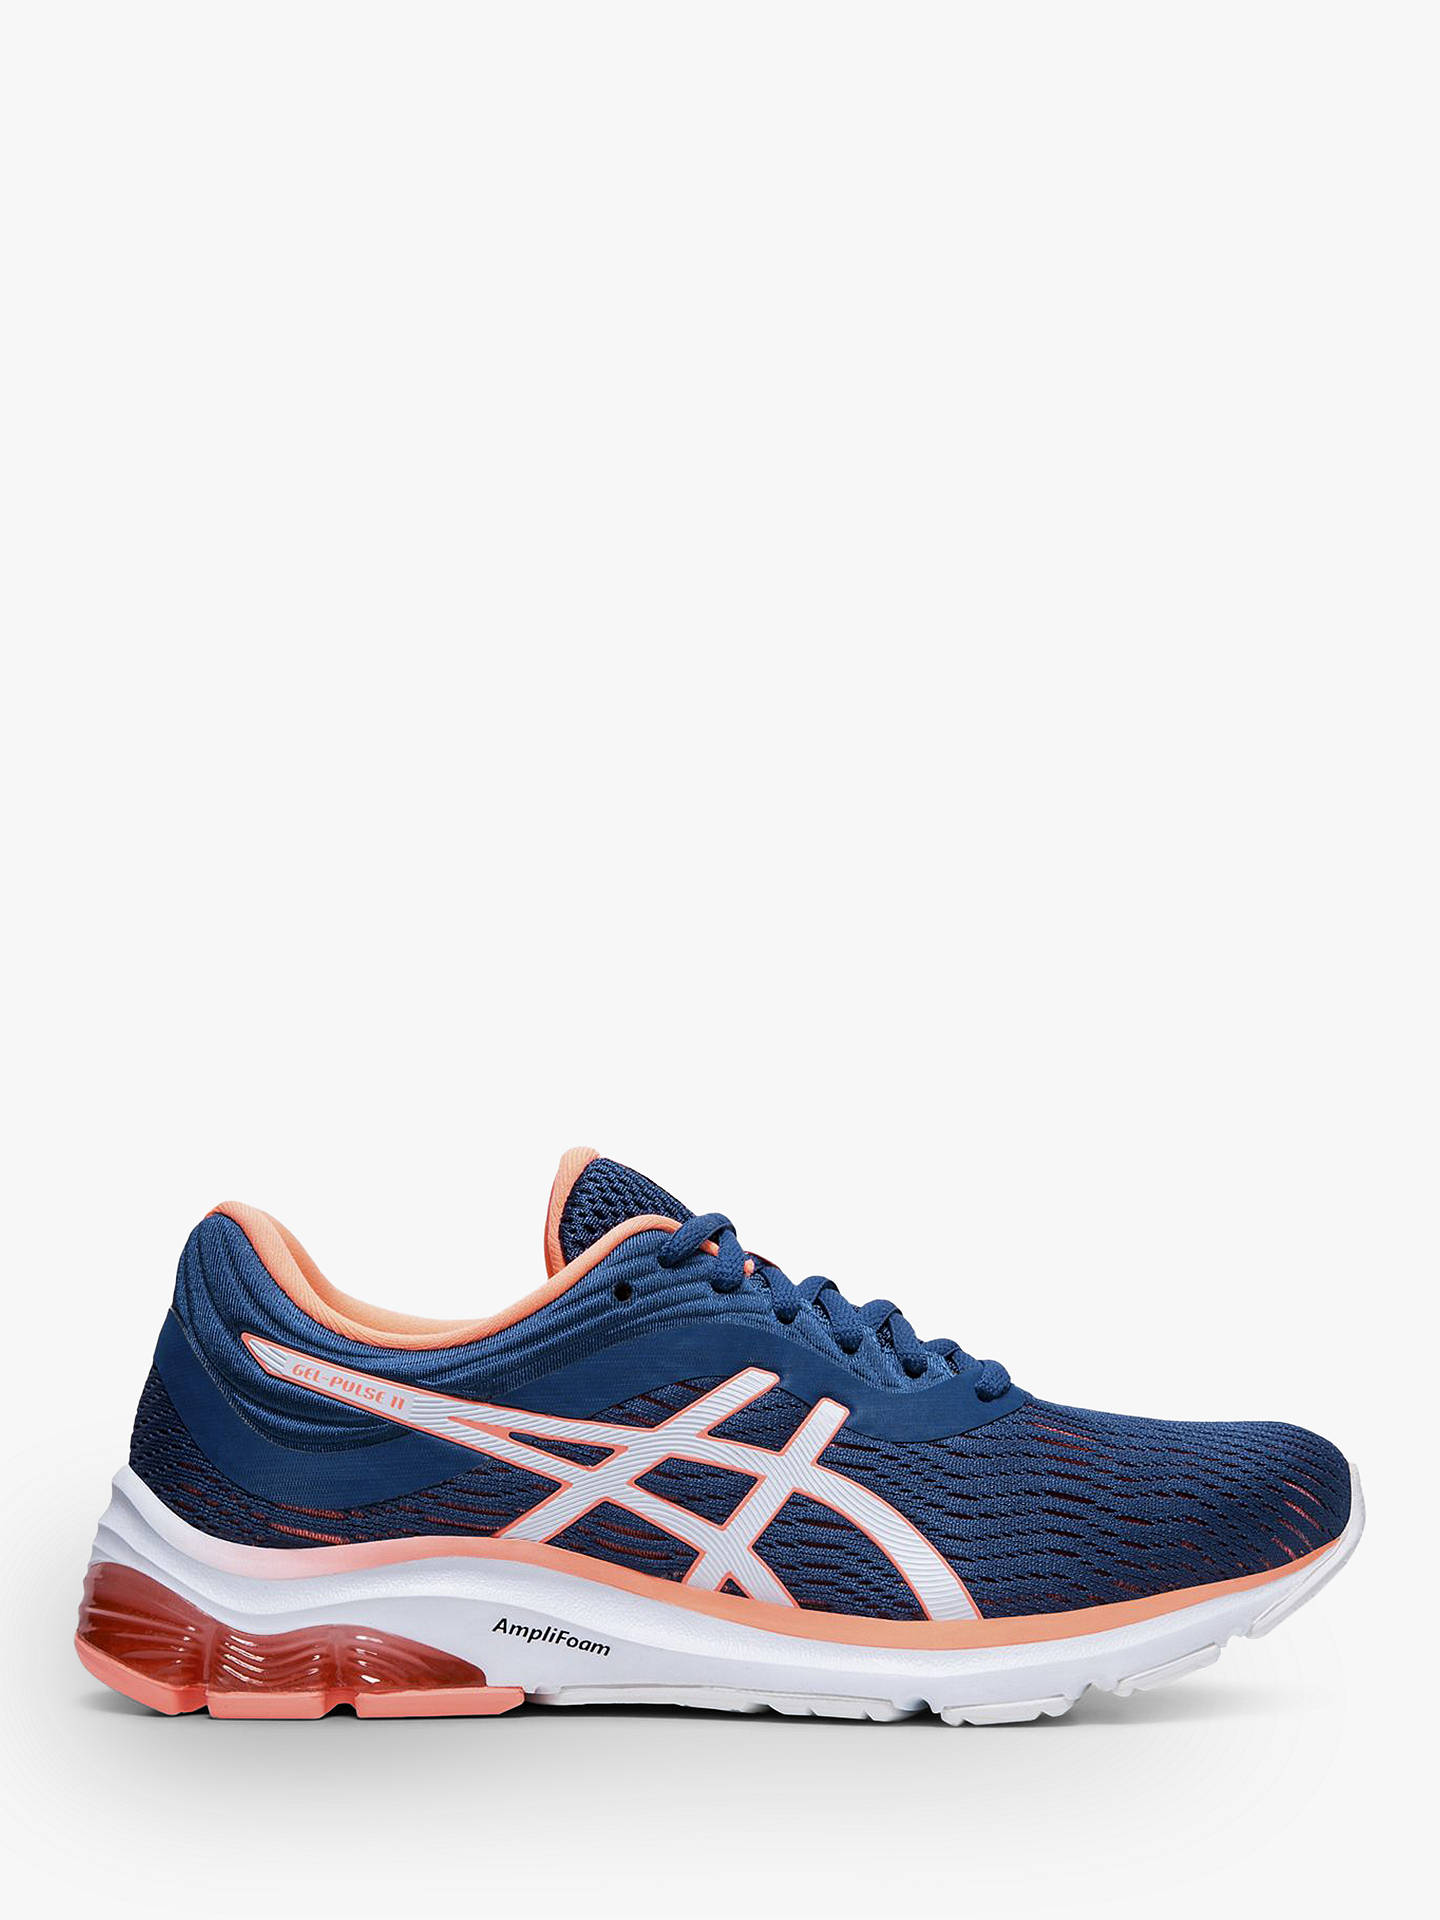 ASICS GEL-PULSE 11 Women's Running Shoes, Mako Blue/Sun Coral